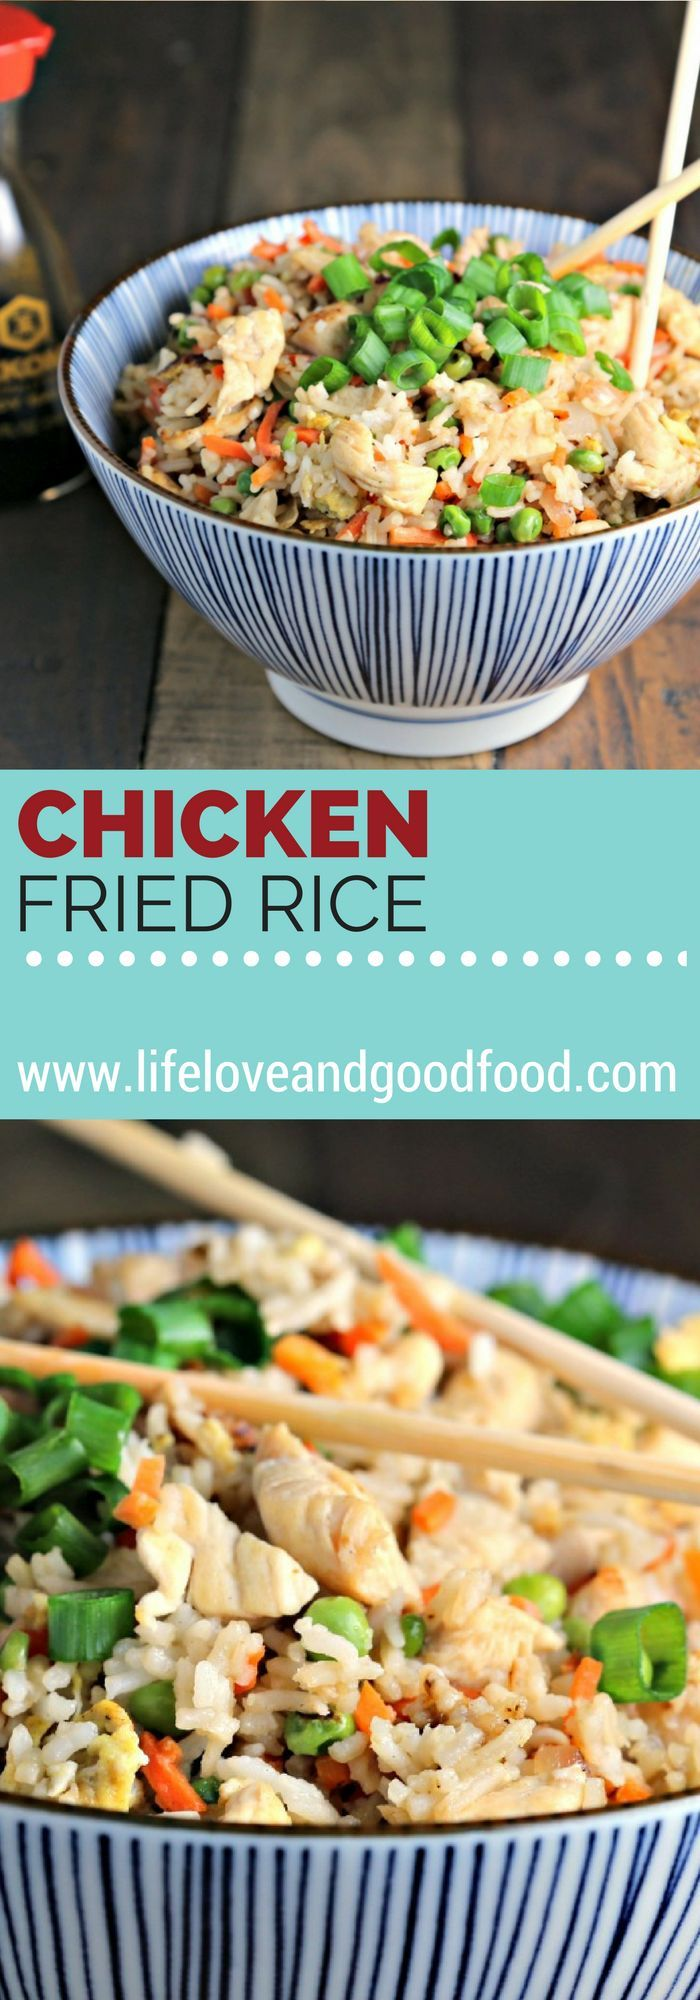 83 best real food images on pinterest food cook and paleo recipes chicken fried rice life love and good food recipe dinner forumfinder Gallery